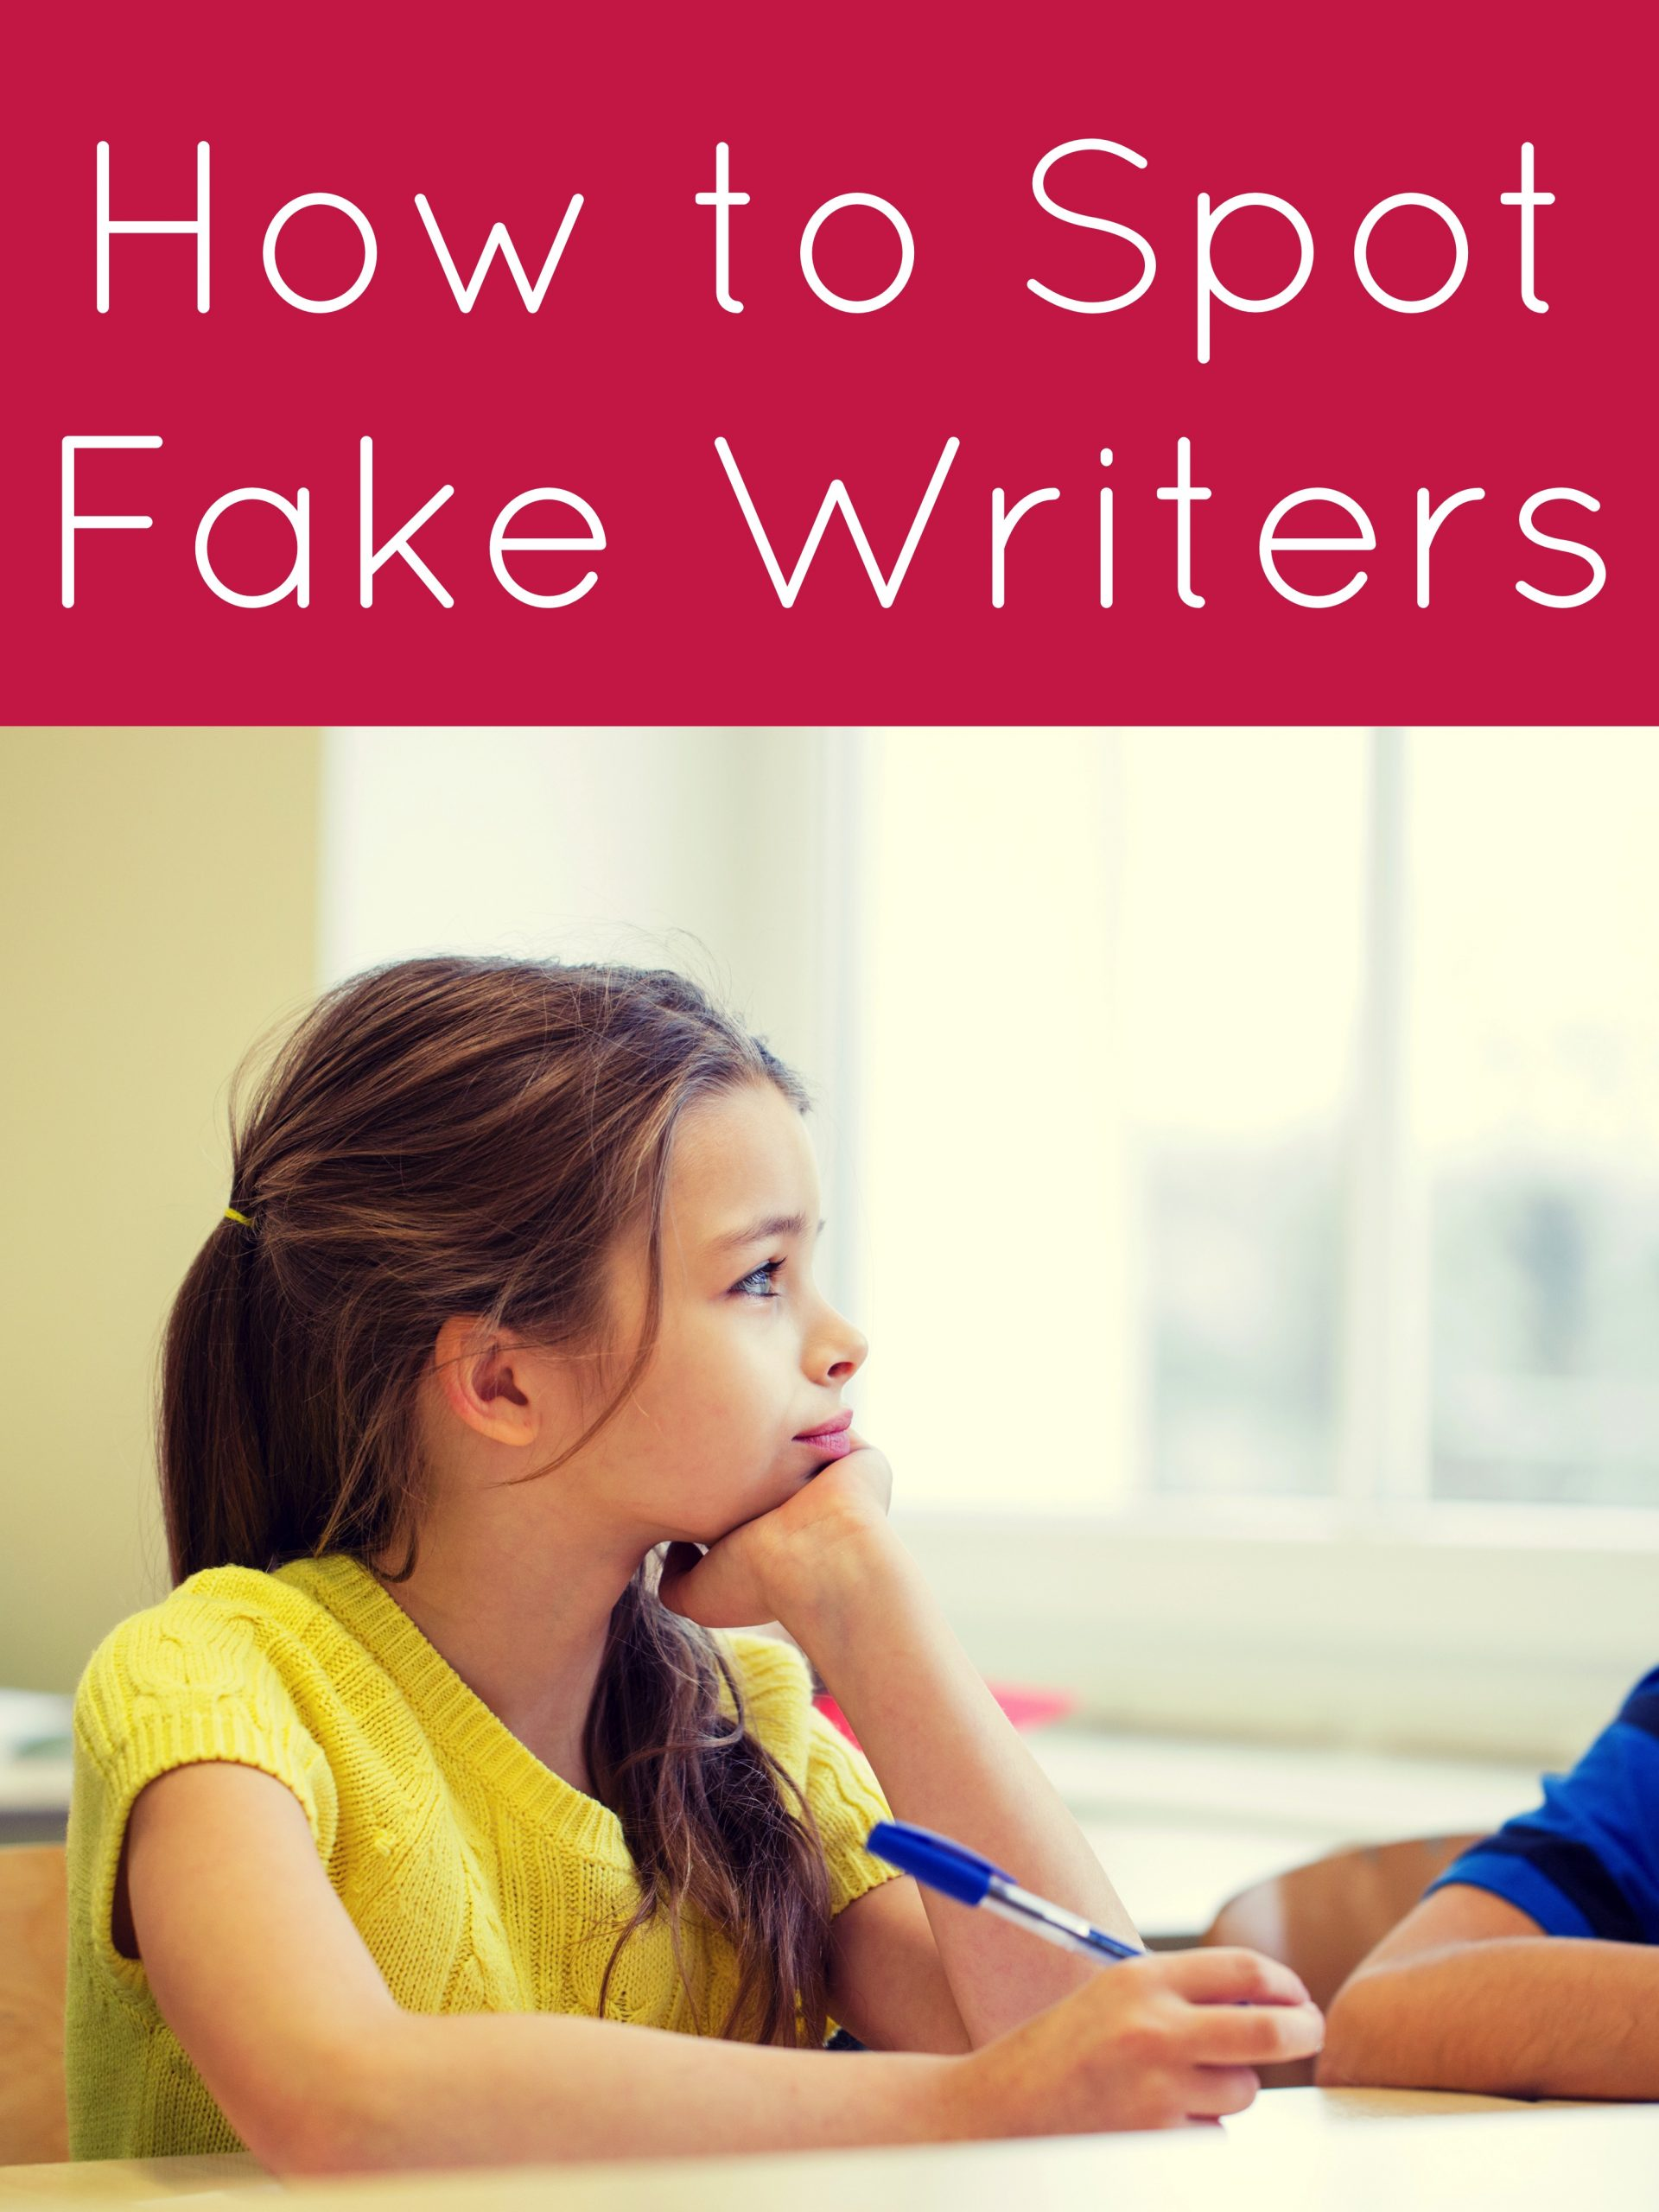 How to Spot Fake Writers